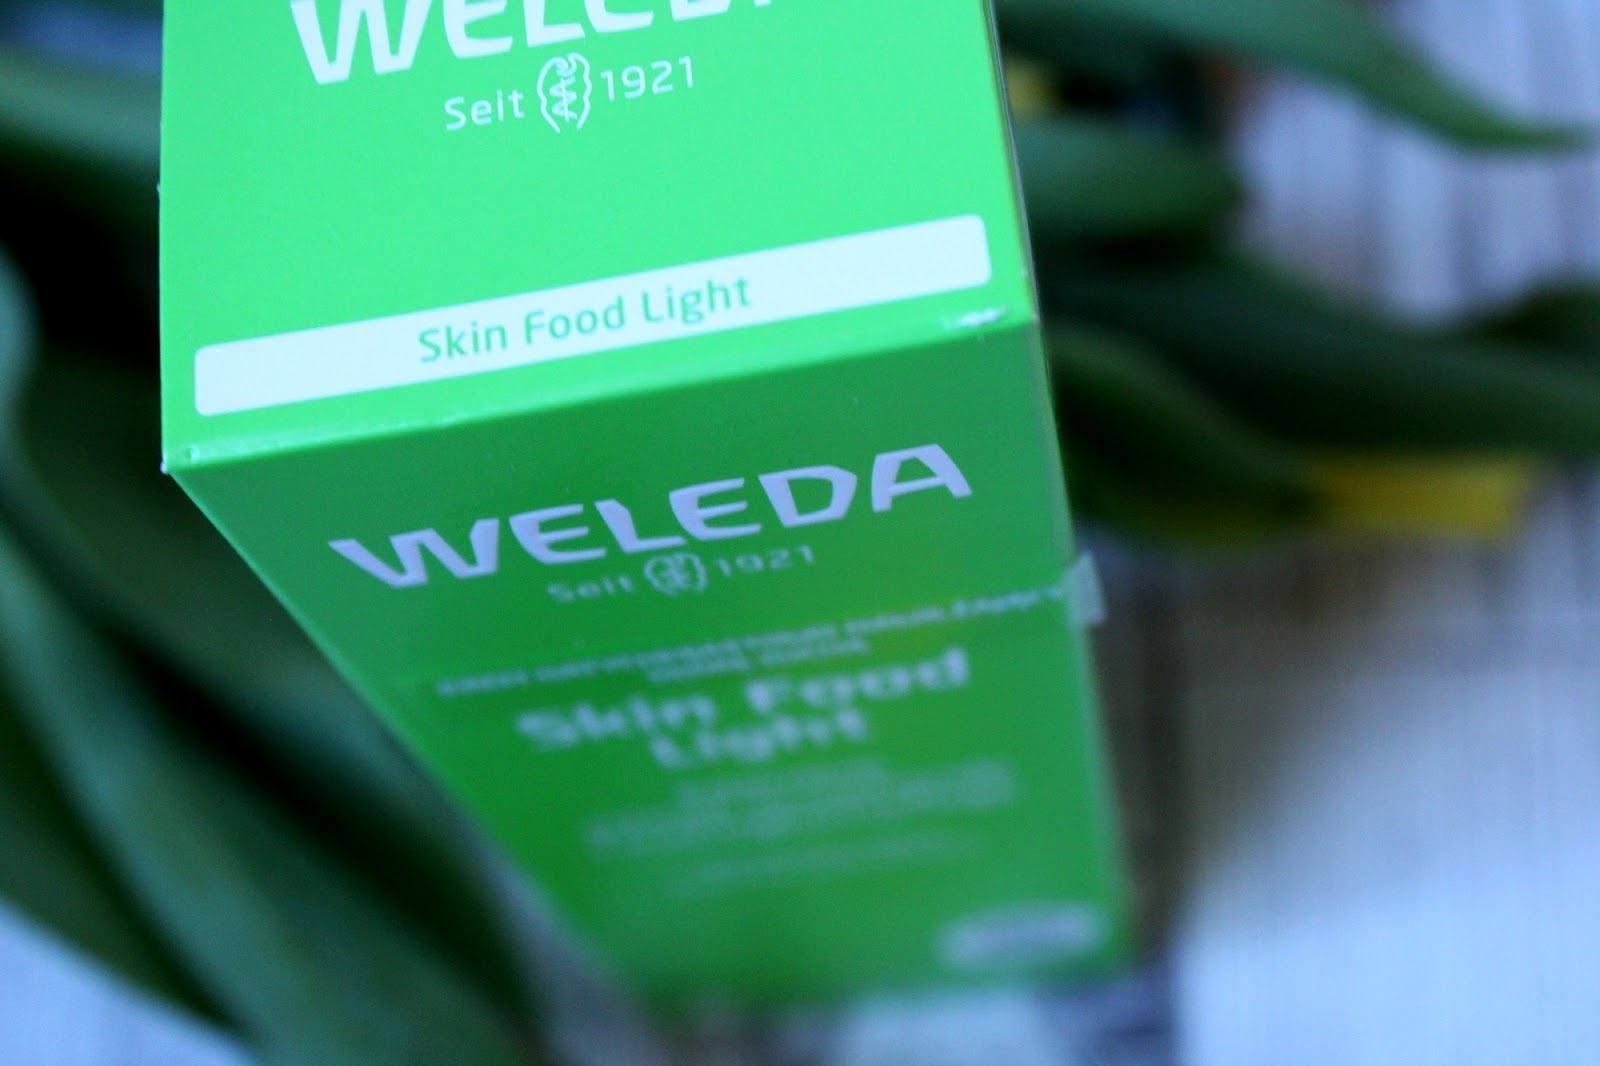 WELEDA Skin Food Light